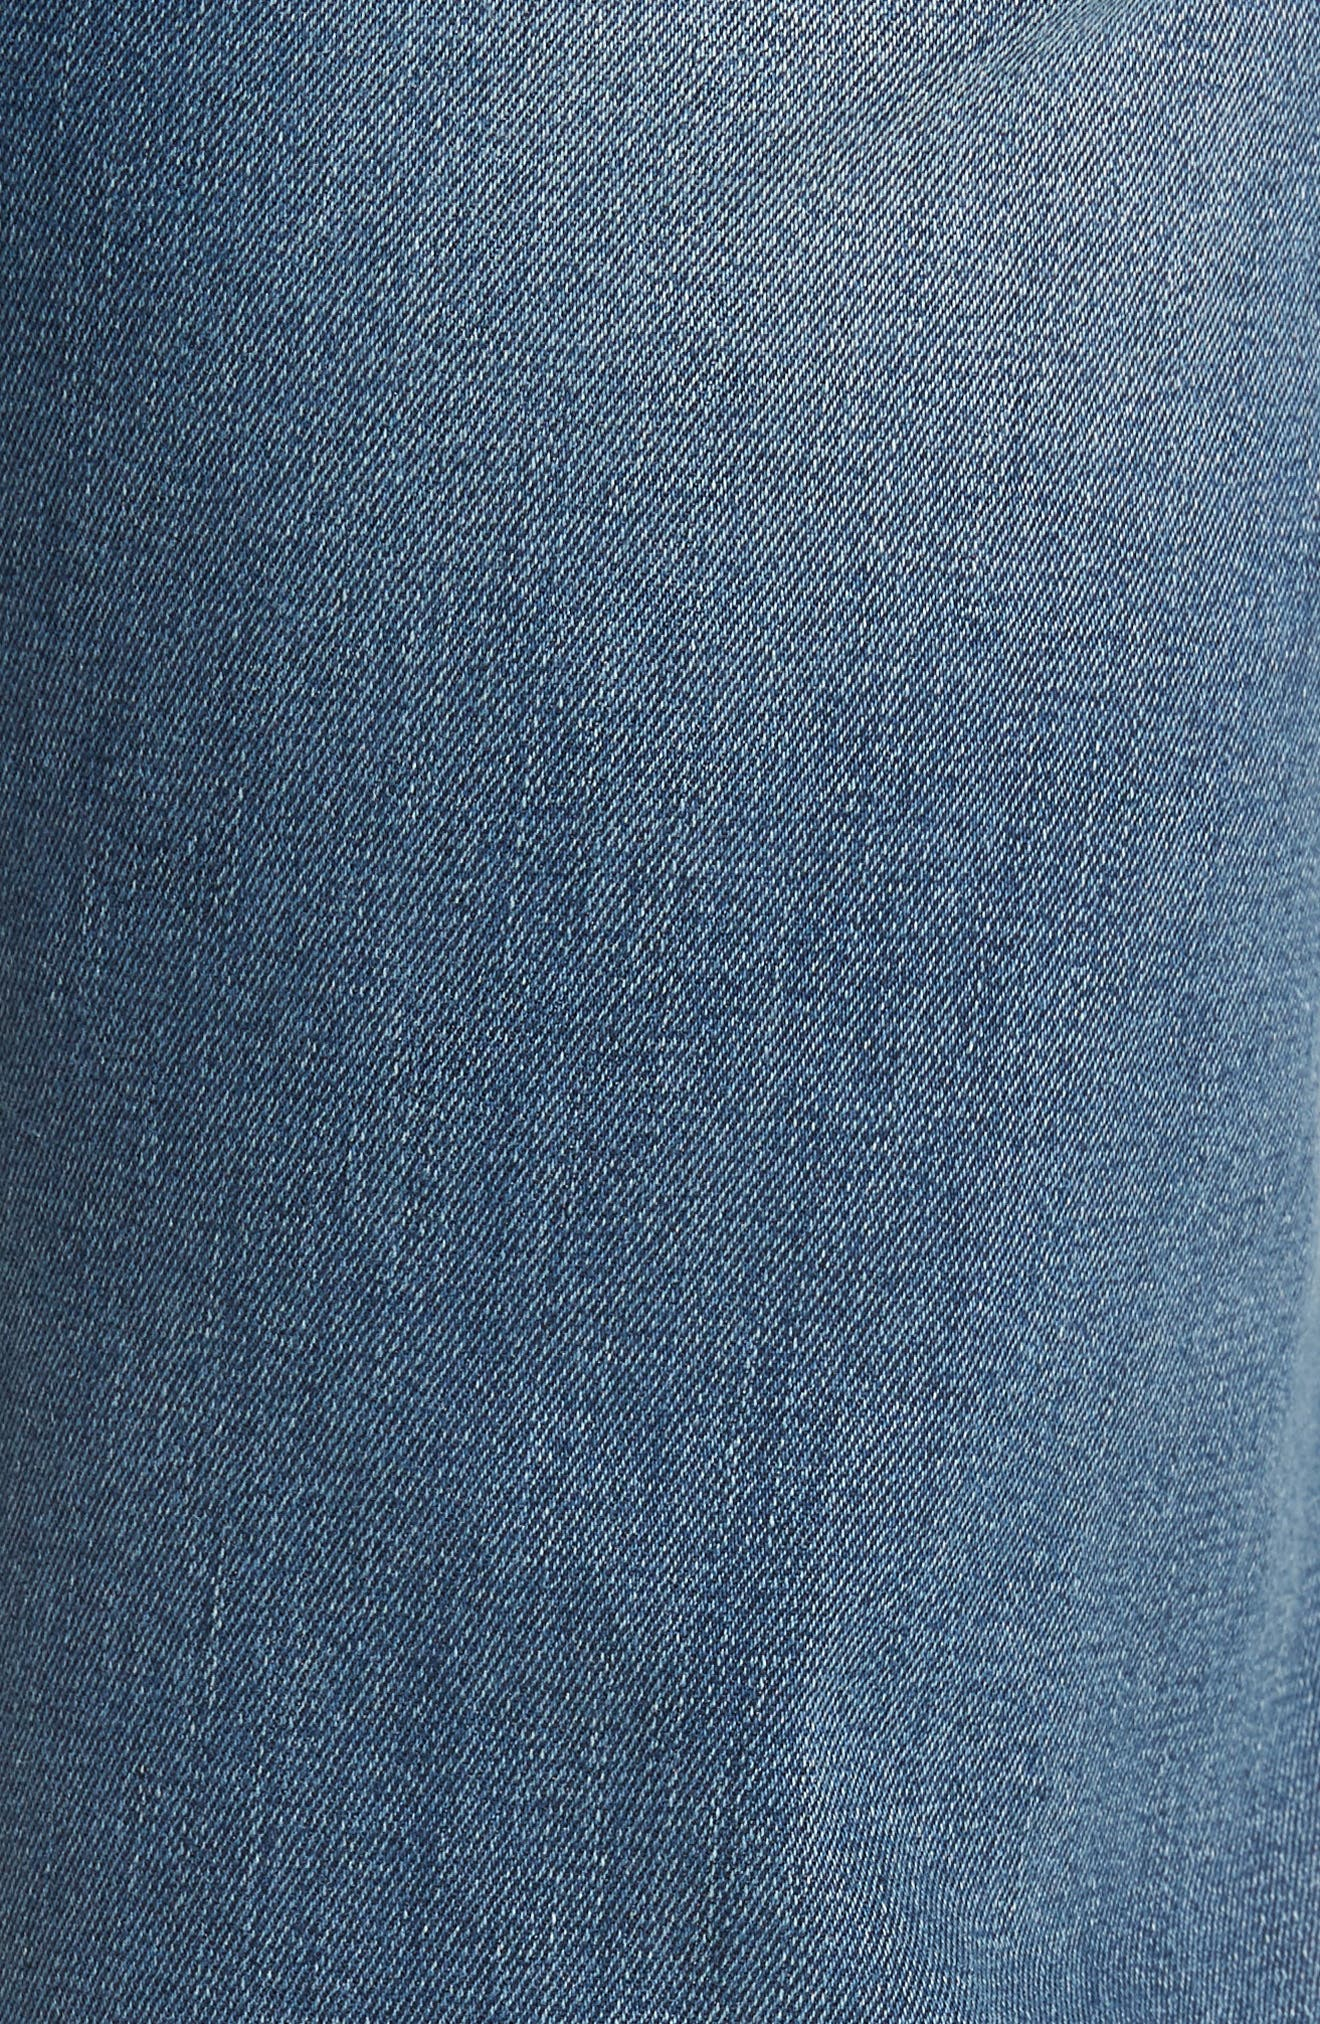 Larkee Relaxed Fit Jeans,                             Alternate thumbnail 5, color,                             900